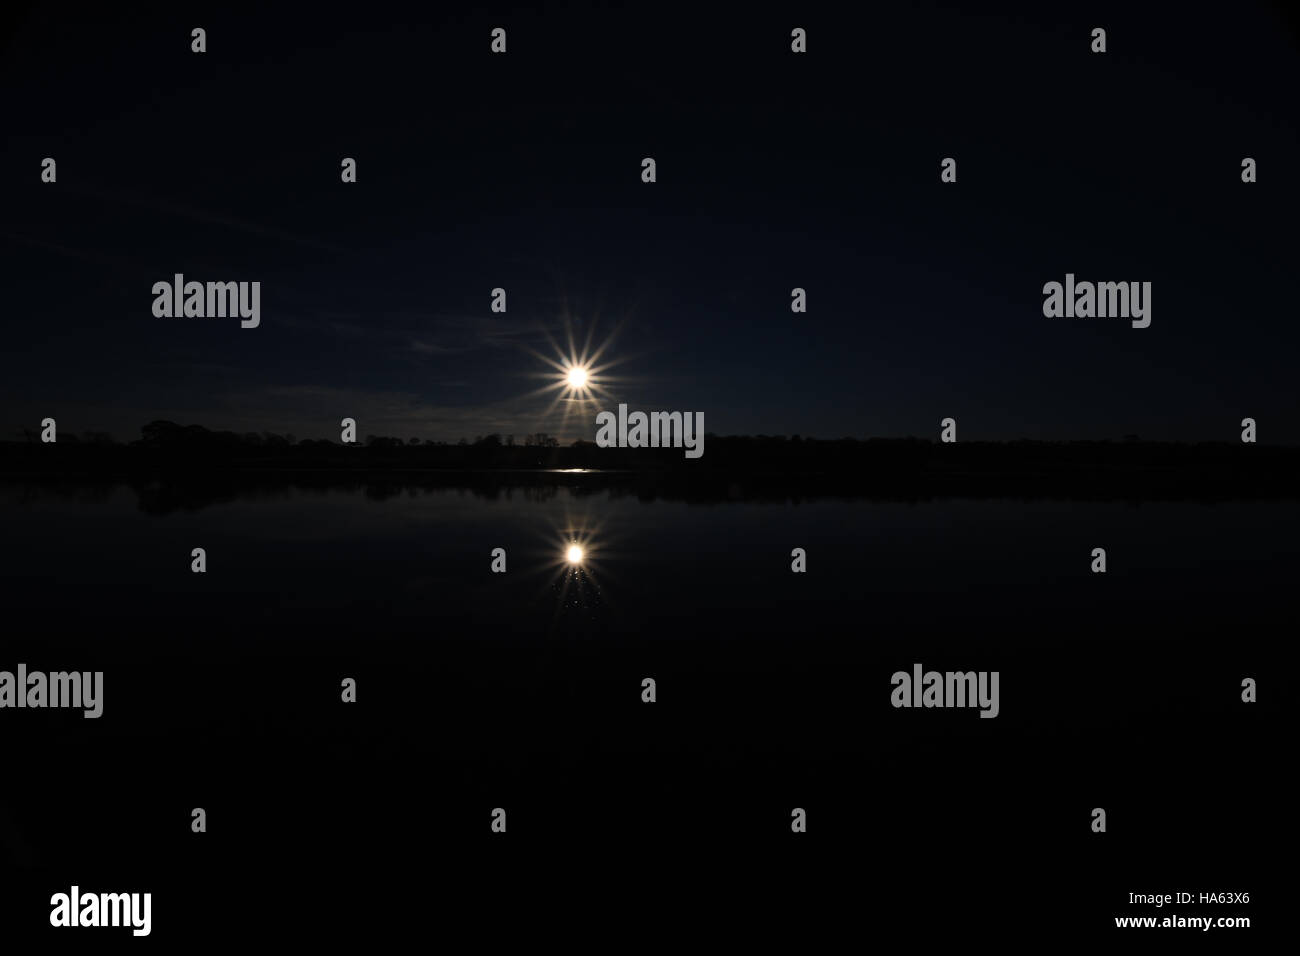 Starry sun reflects in calm water at low tide making a silhouette with deep blue sky - Stock Image